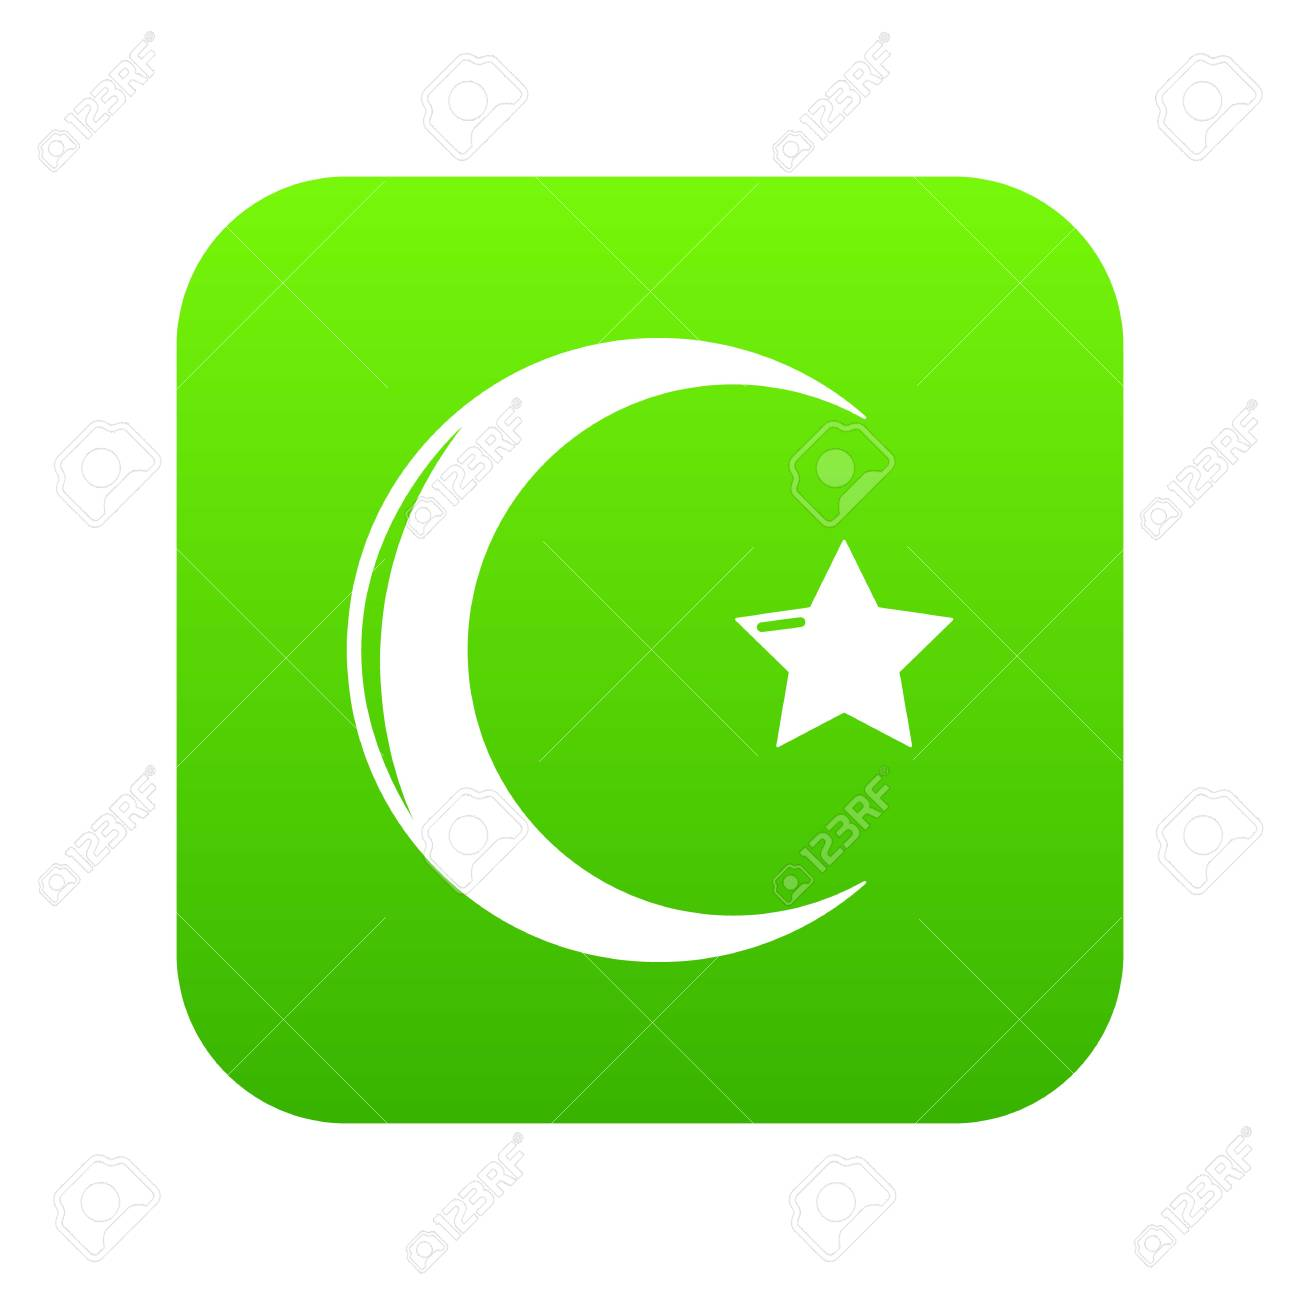 Star Crescent Symbol Islam Icon Green Vector Royalty Free Cliparts Vectors And Stock Illustration Image 112235633